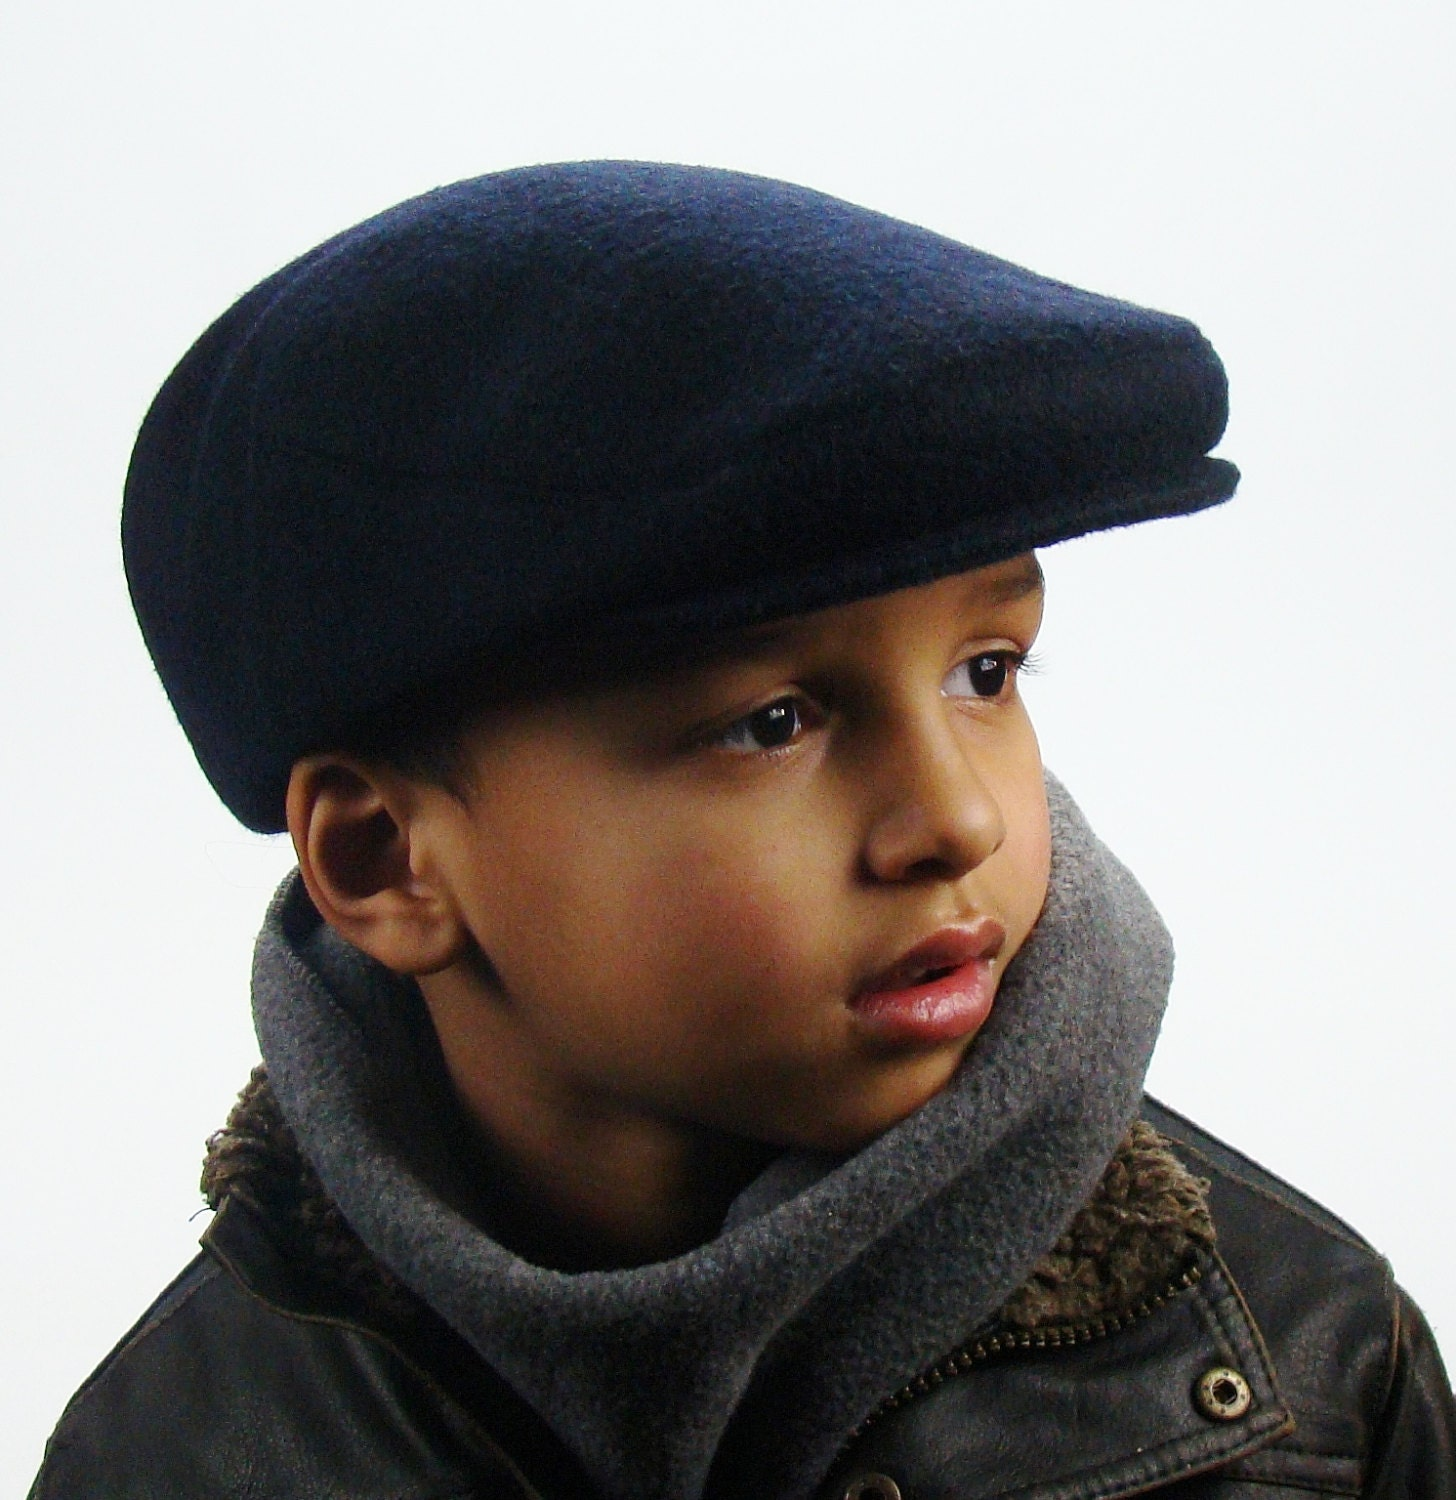 Navy Wool Sixpence Jeff Hat - Flat Jeff Cap, Ivy Cap, Driving Cap for Men, Women, and Children